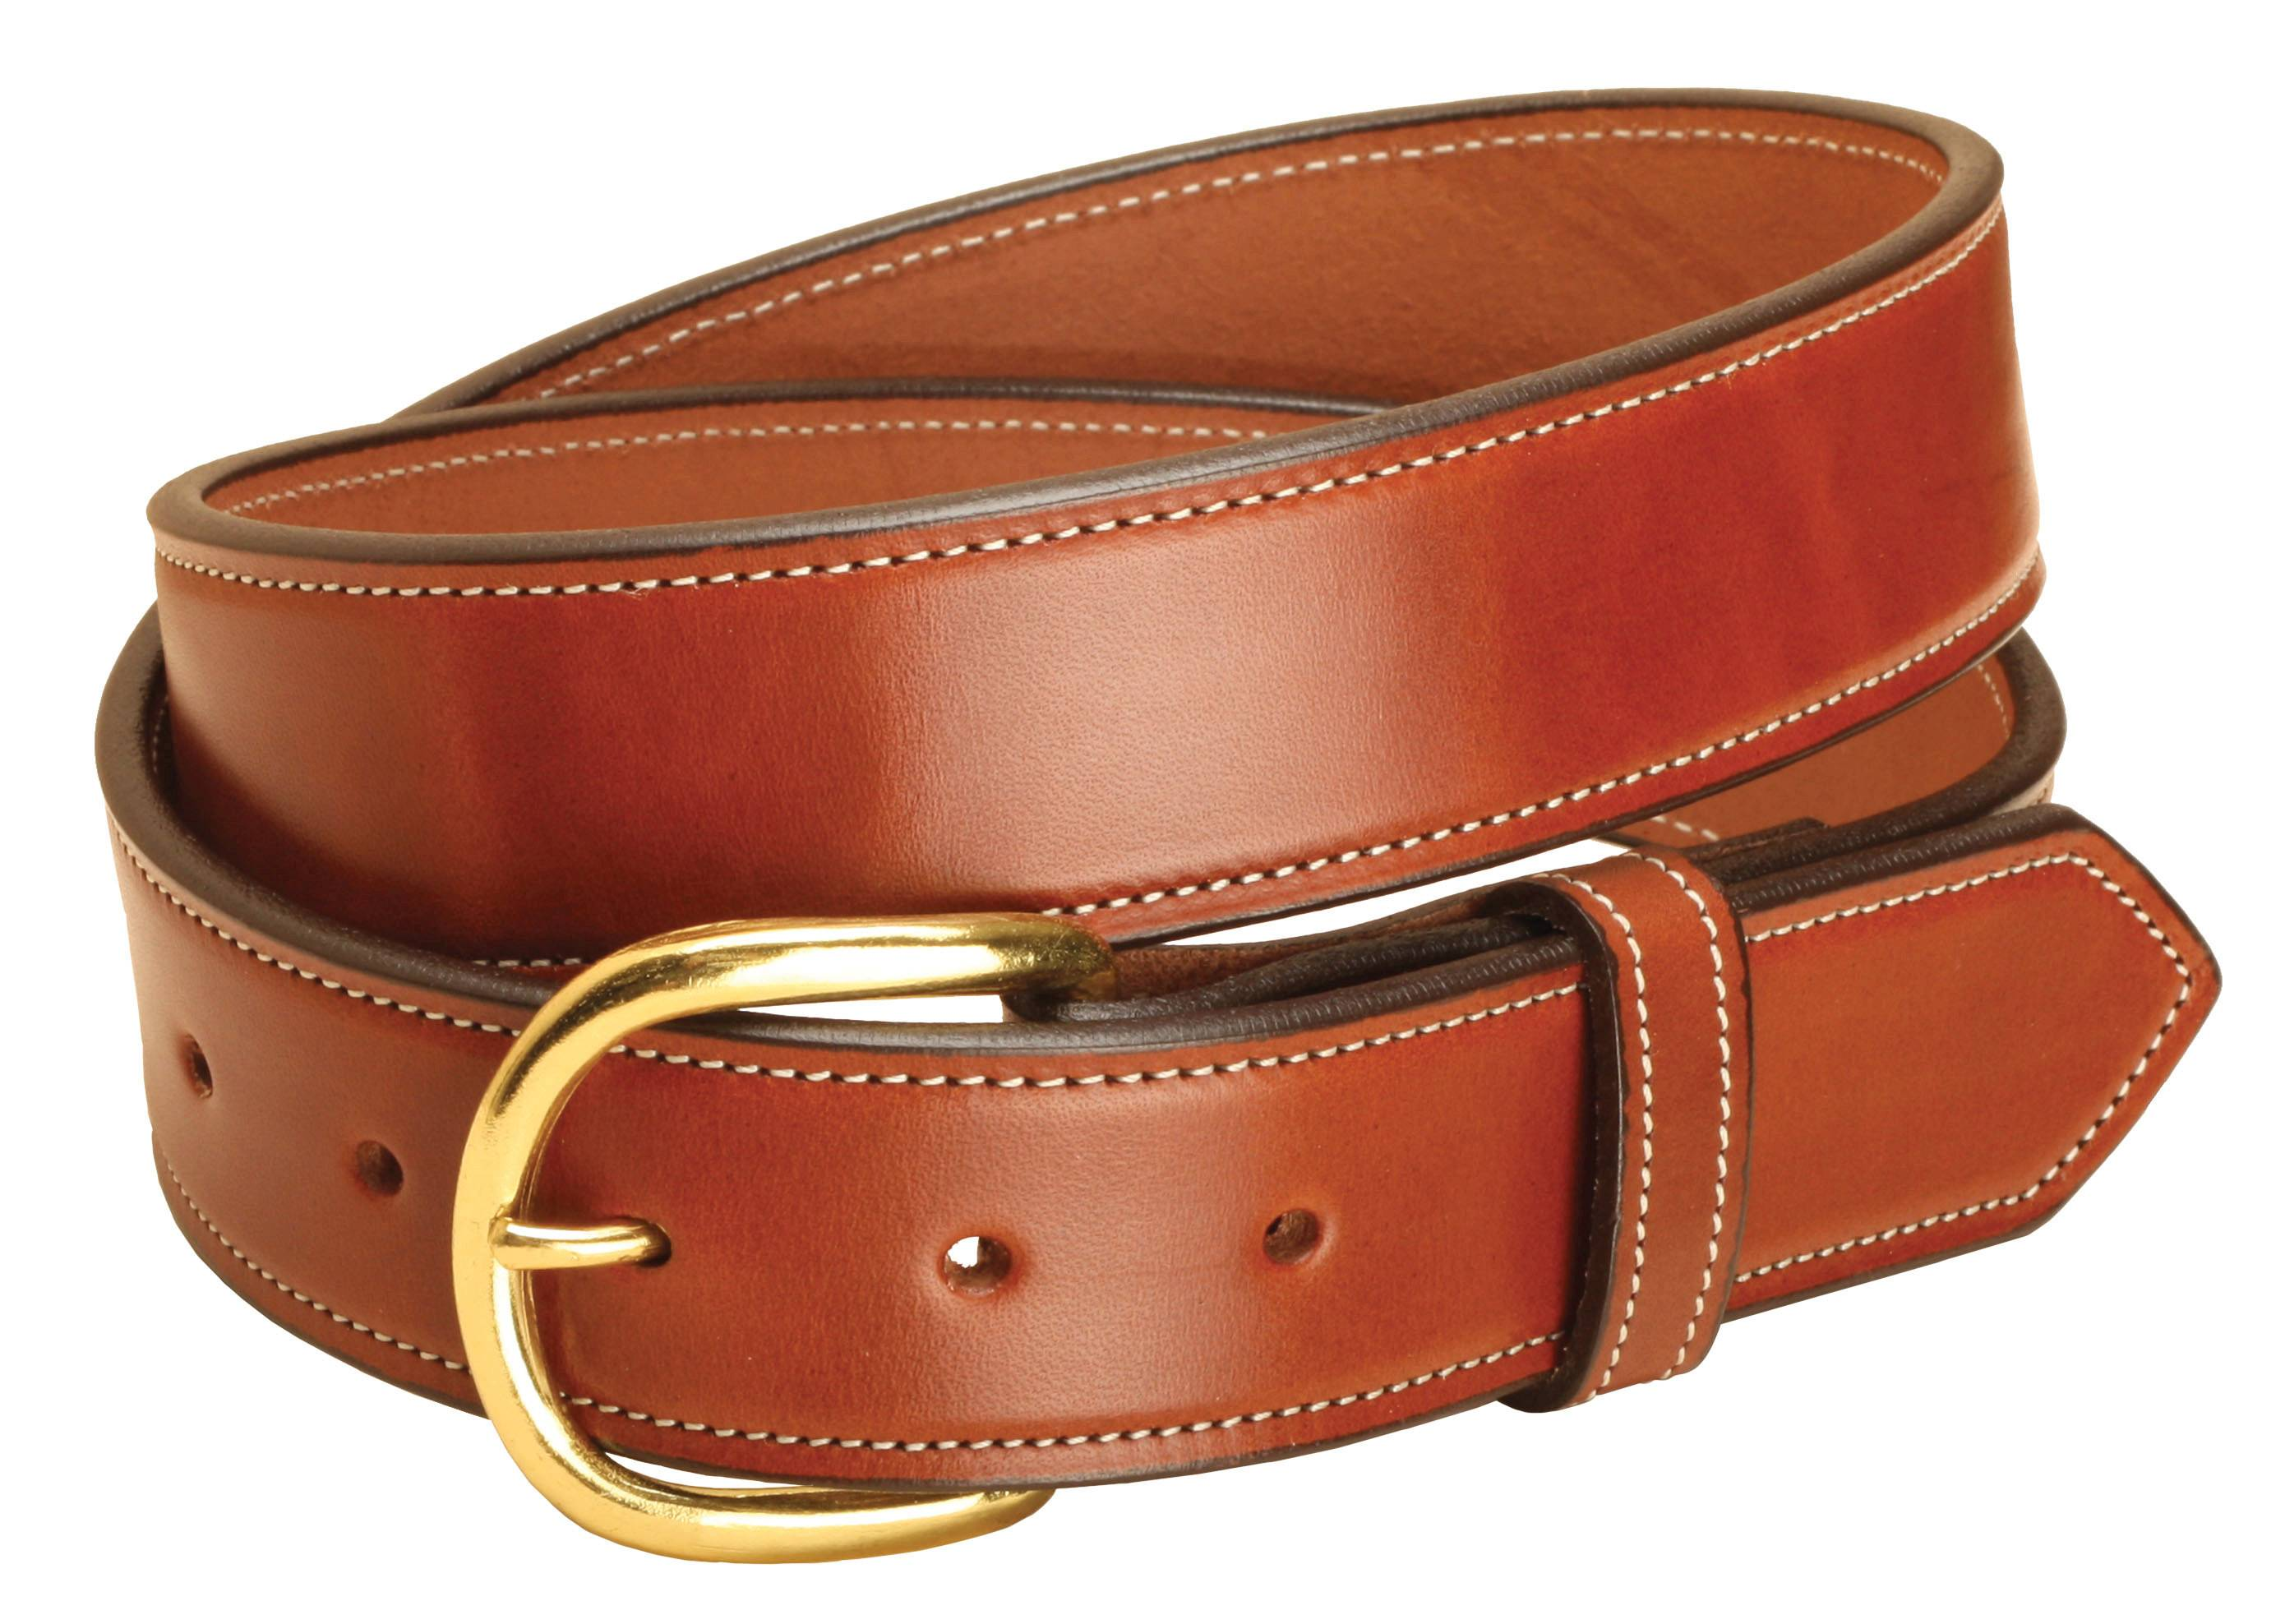 Tory Leather 1 1/2'' Stitched Belt with Brass Buckle